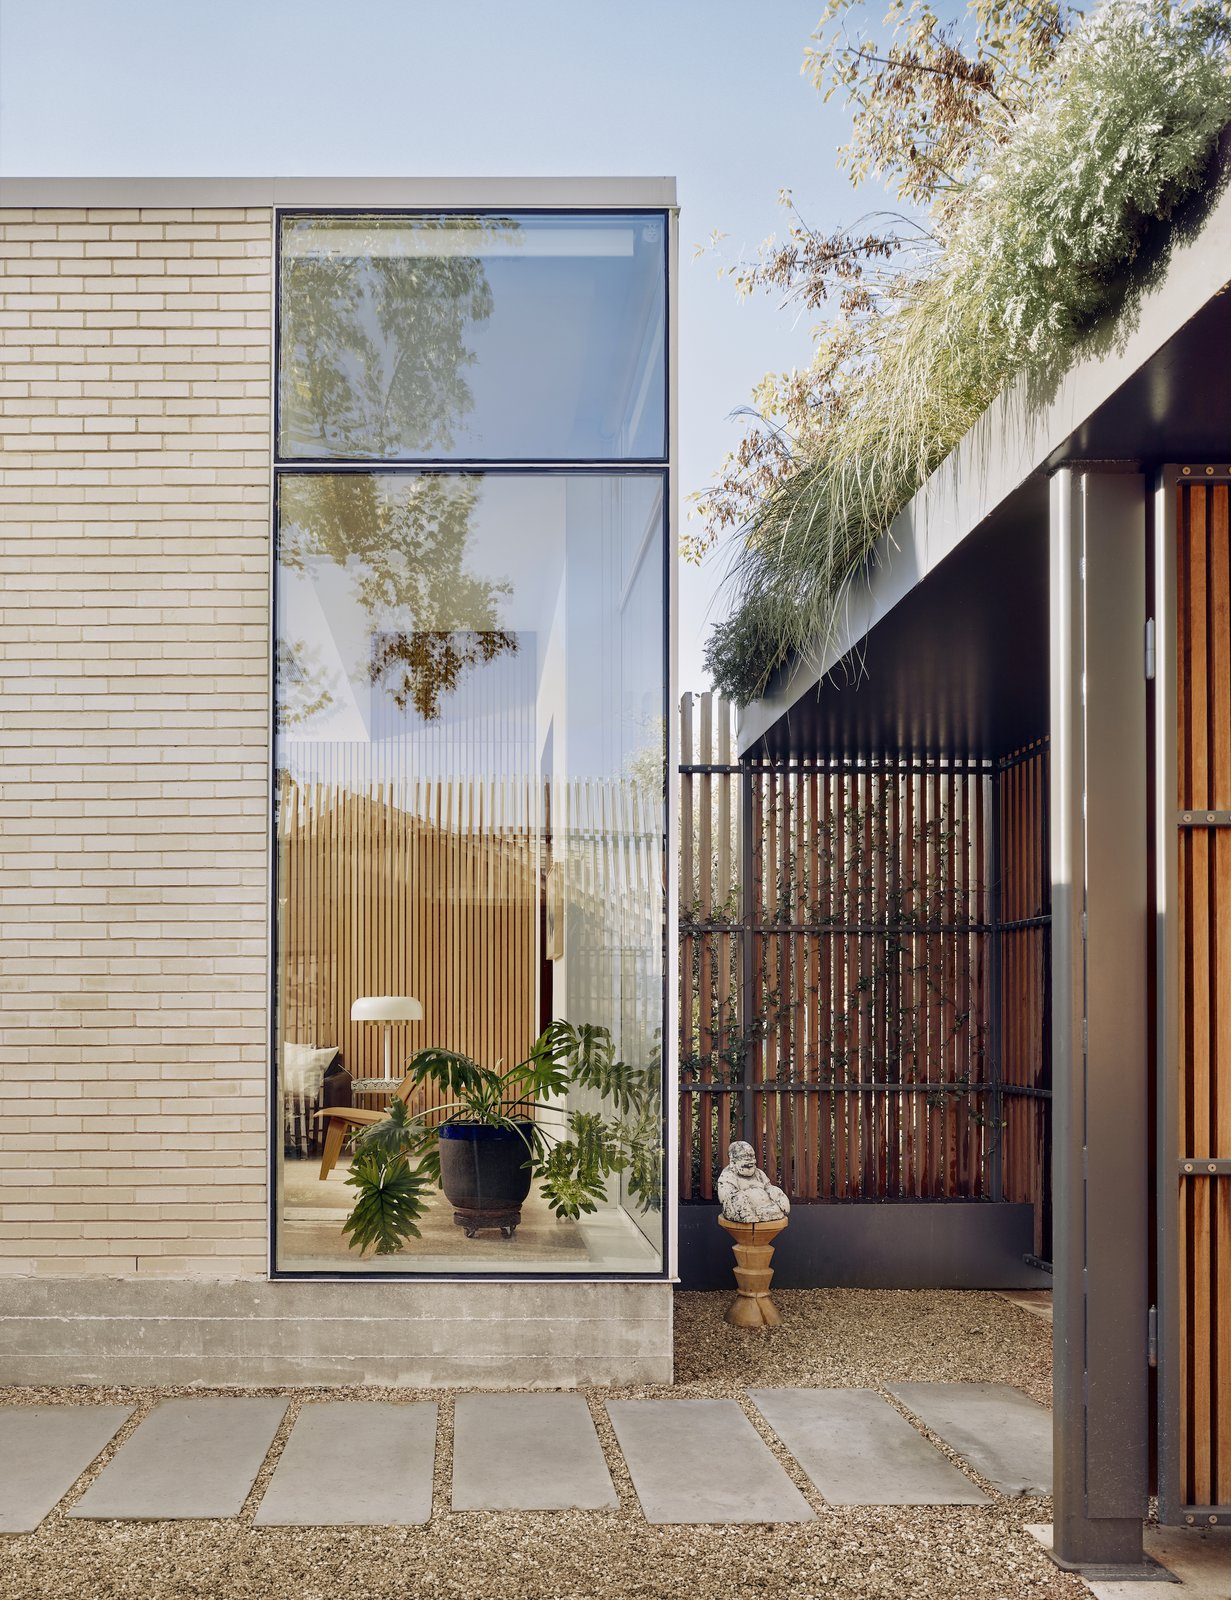 Entrance courtyard of Hemlock Ave. House by Chioco Design.